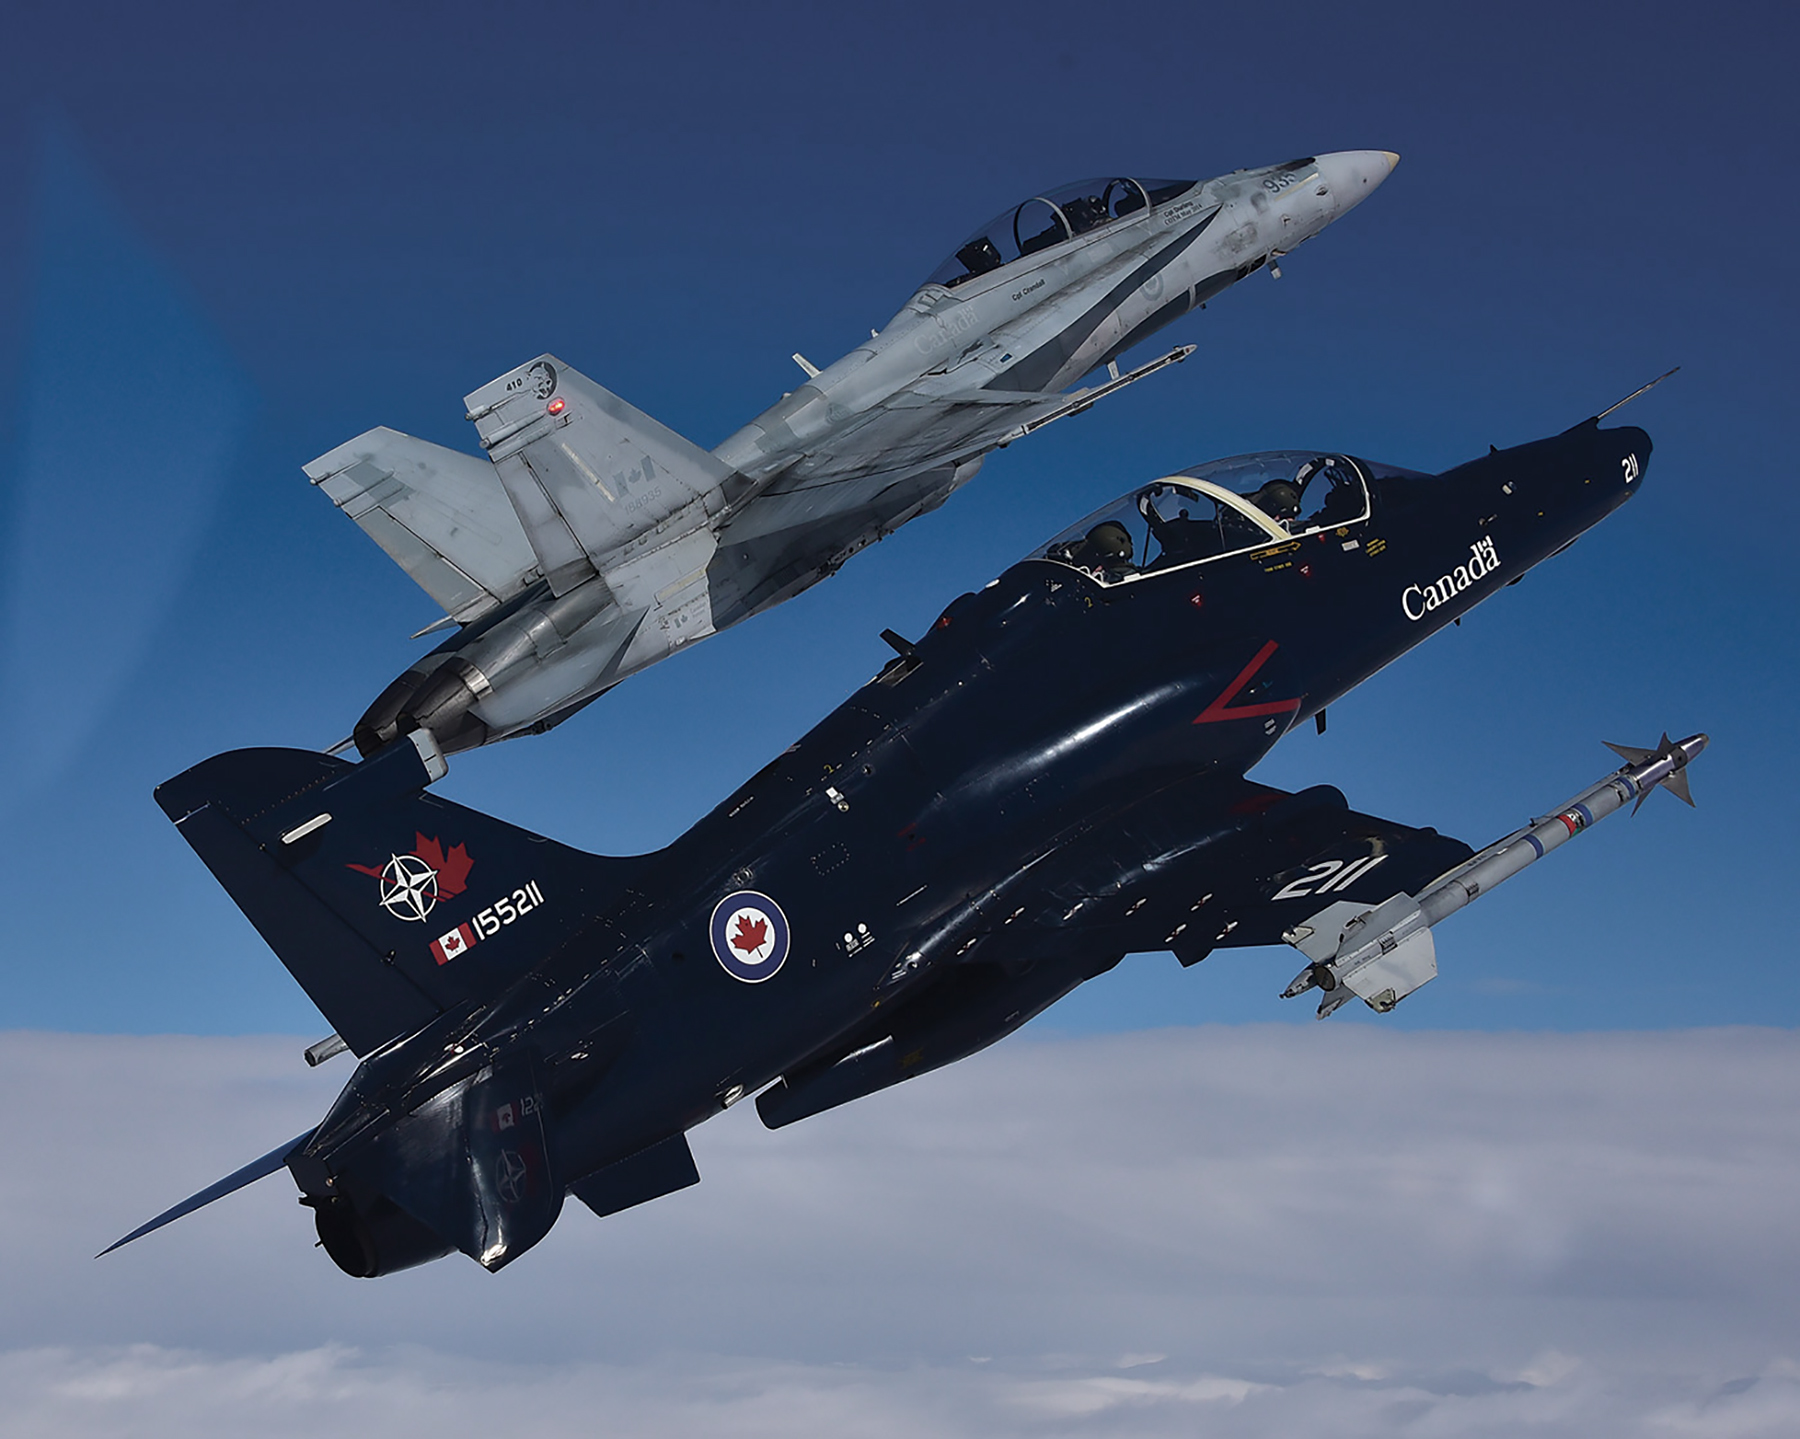 Eye on the prize: From the CT-155 Hawk trainer (foreground), the next step is the CF-188 Hornet, Canada's front-line fighter. PHOTO: Mike Reyno, Skies magazine